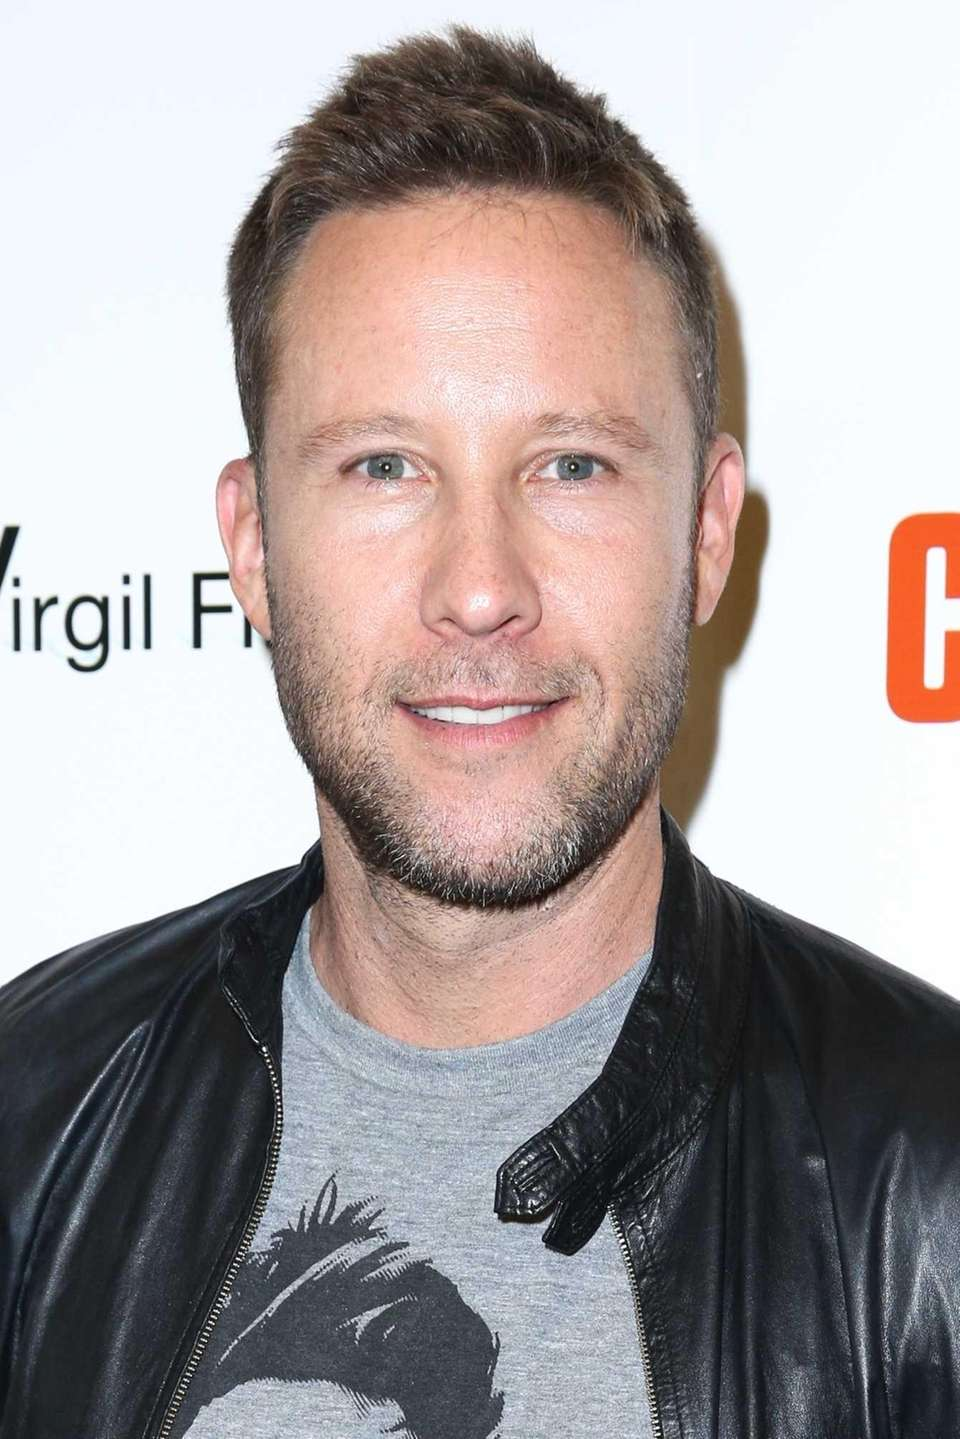 Michael Rosenbaum, an actor and producer who is